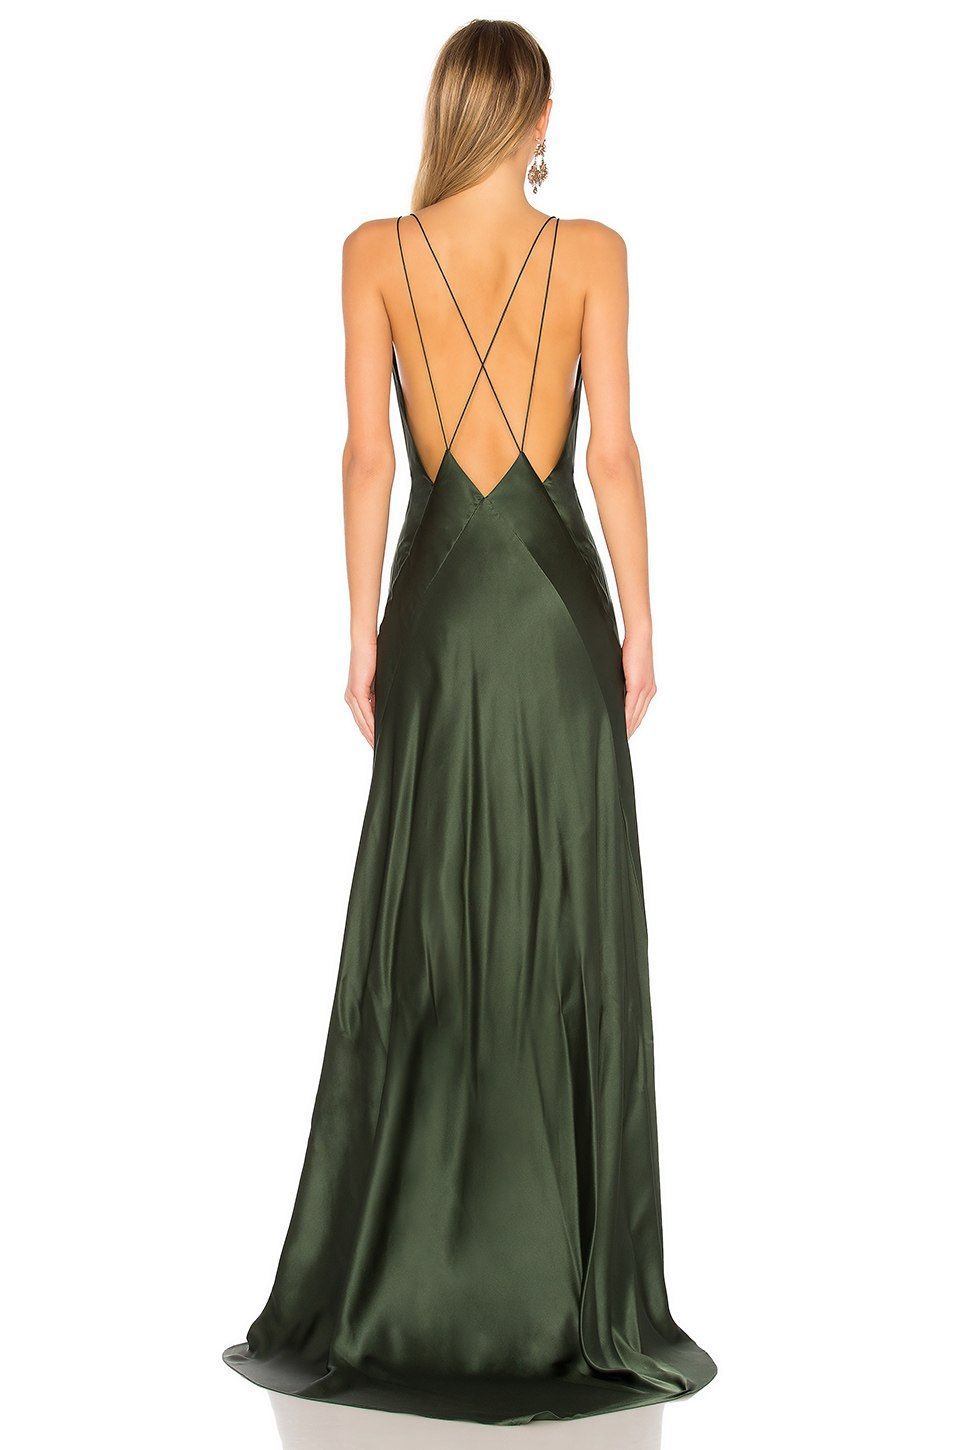 Michael Lo Sordo Alexandra Maxi Dress In Bottle Green Revolve Pretty Dresses Special Dresses Fashion Shop the best women's designer dresses from high end, party, lace top, evening maxi, or maxi cocktail dresses! pinterest